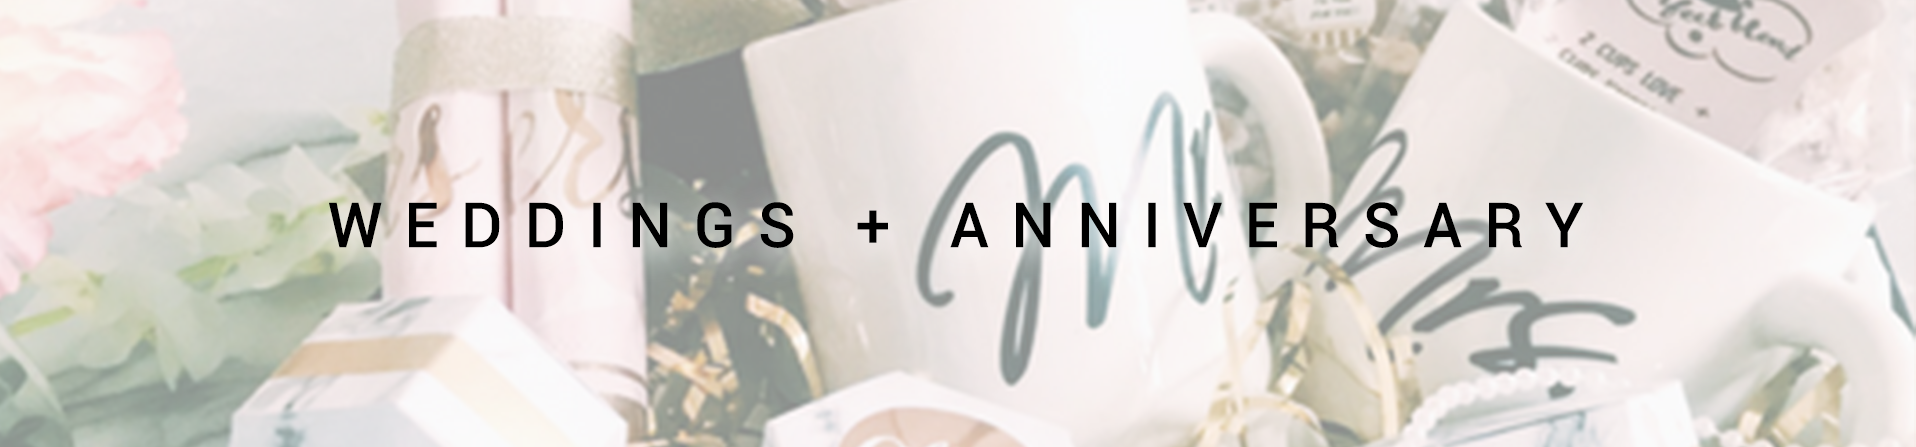 - Gifts For Weddings + Anniversary -